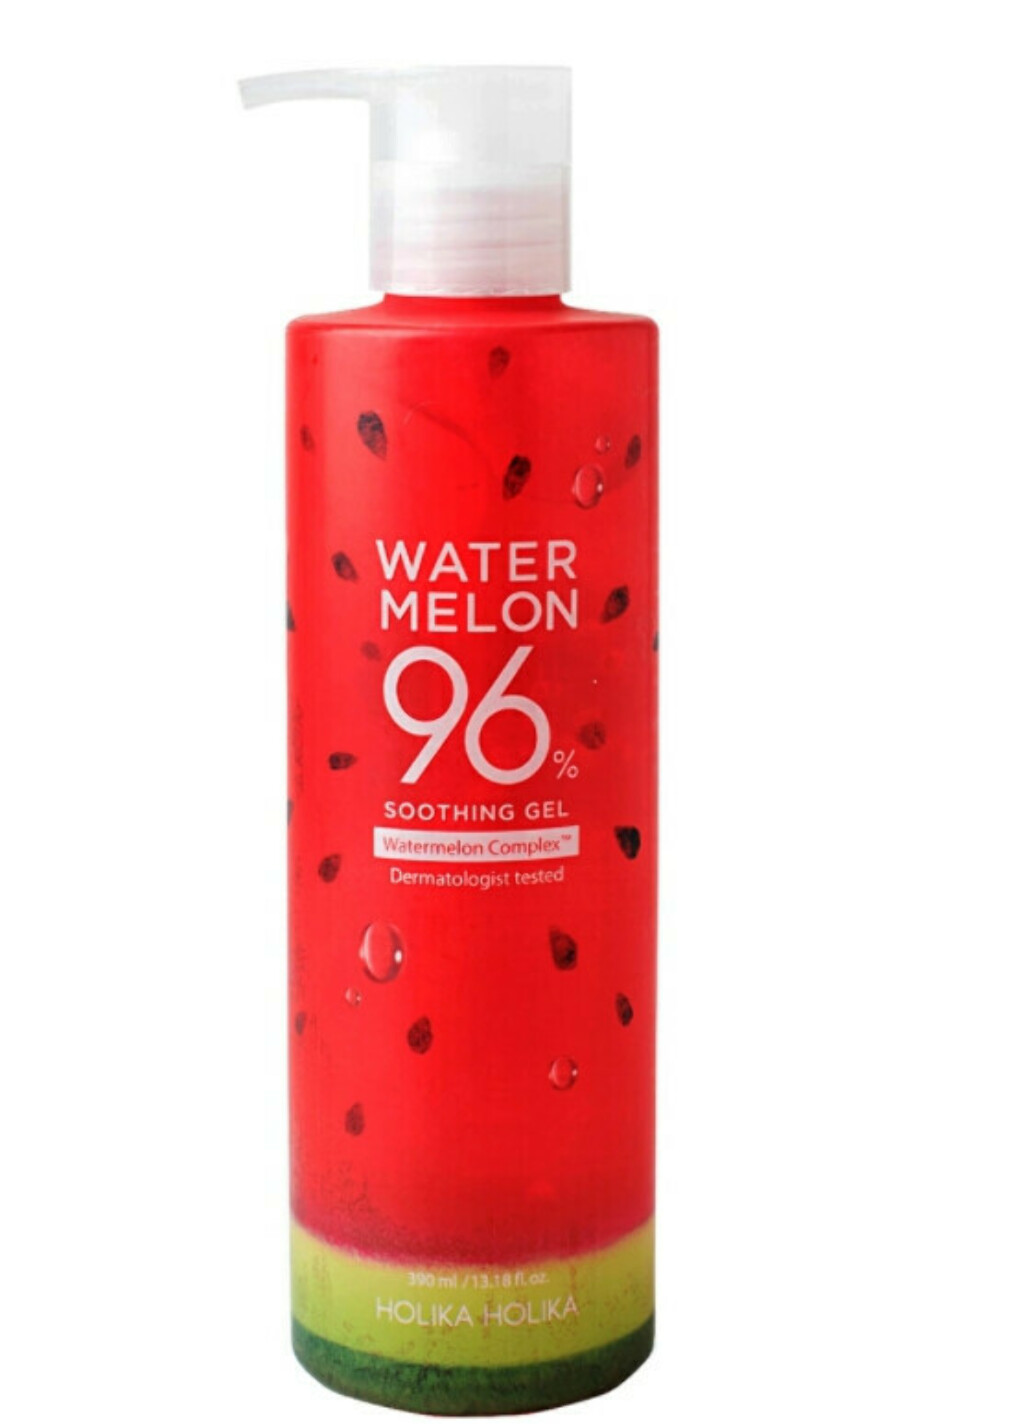 Holika Holika Water Melon 96% Soothing Gel